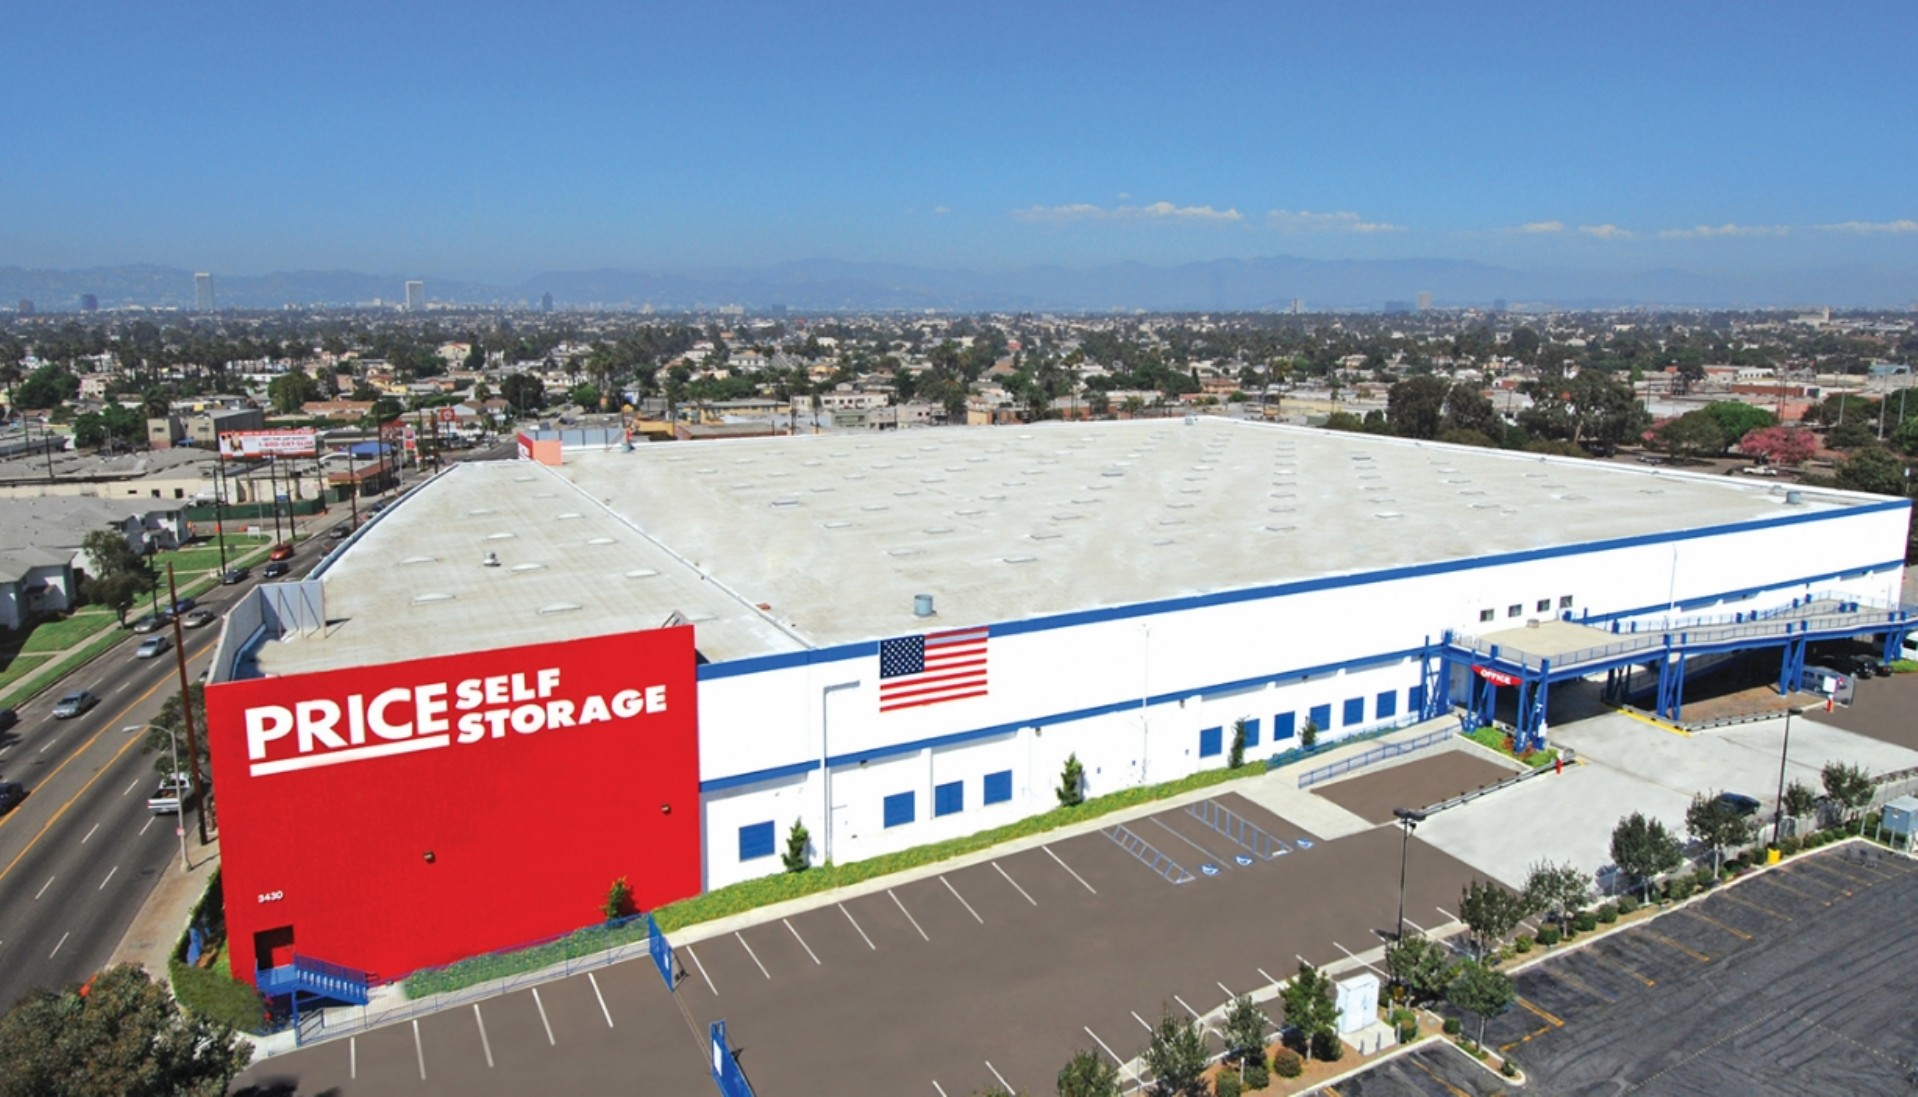 Price Self Storage West Los Angeles aerial view of the facility.